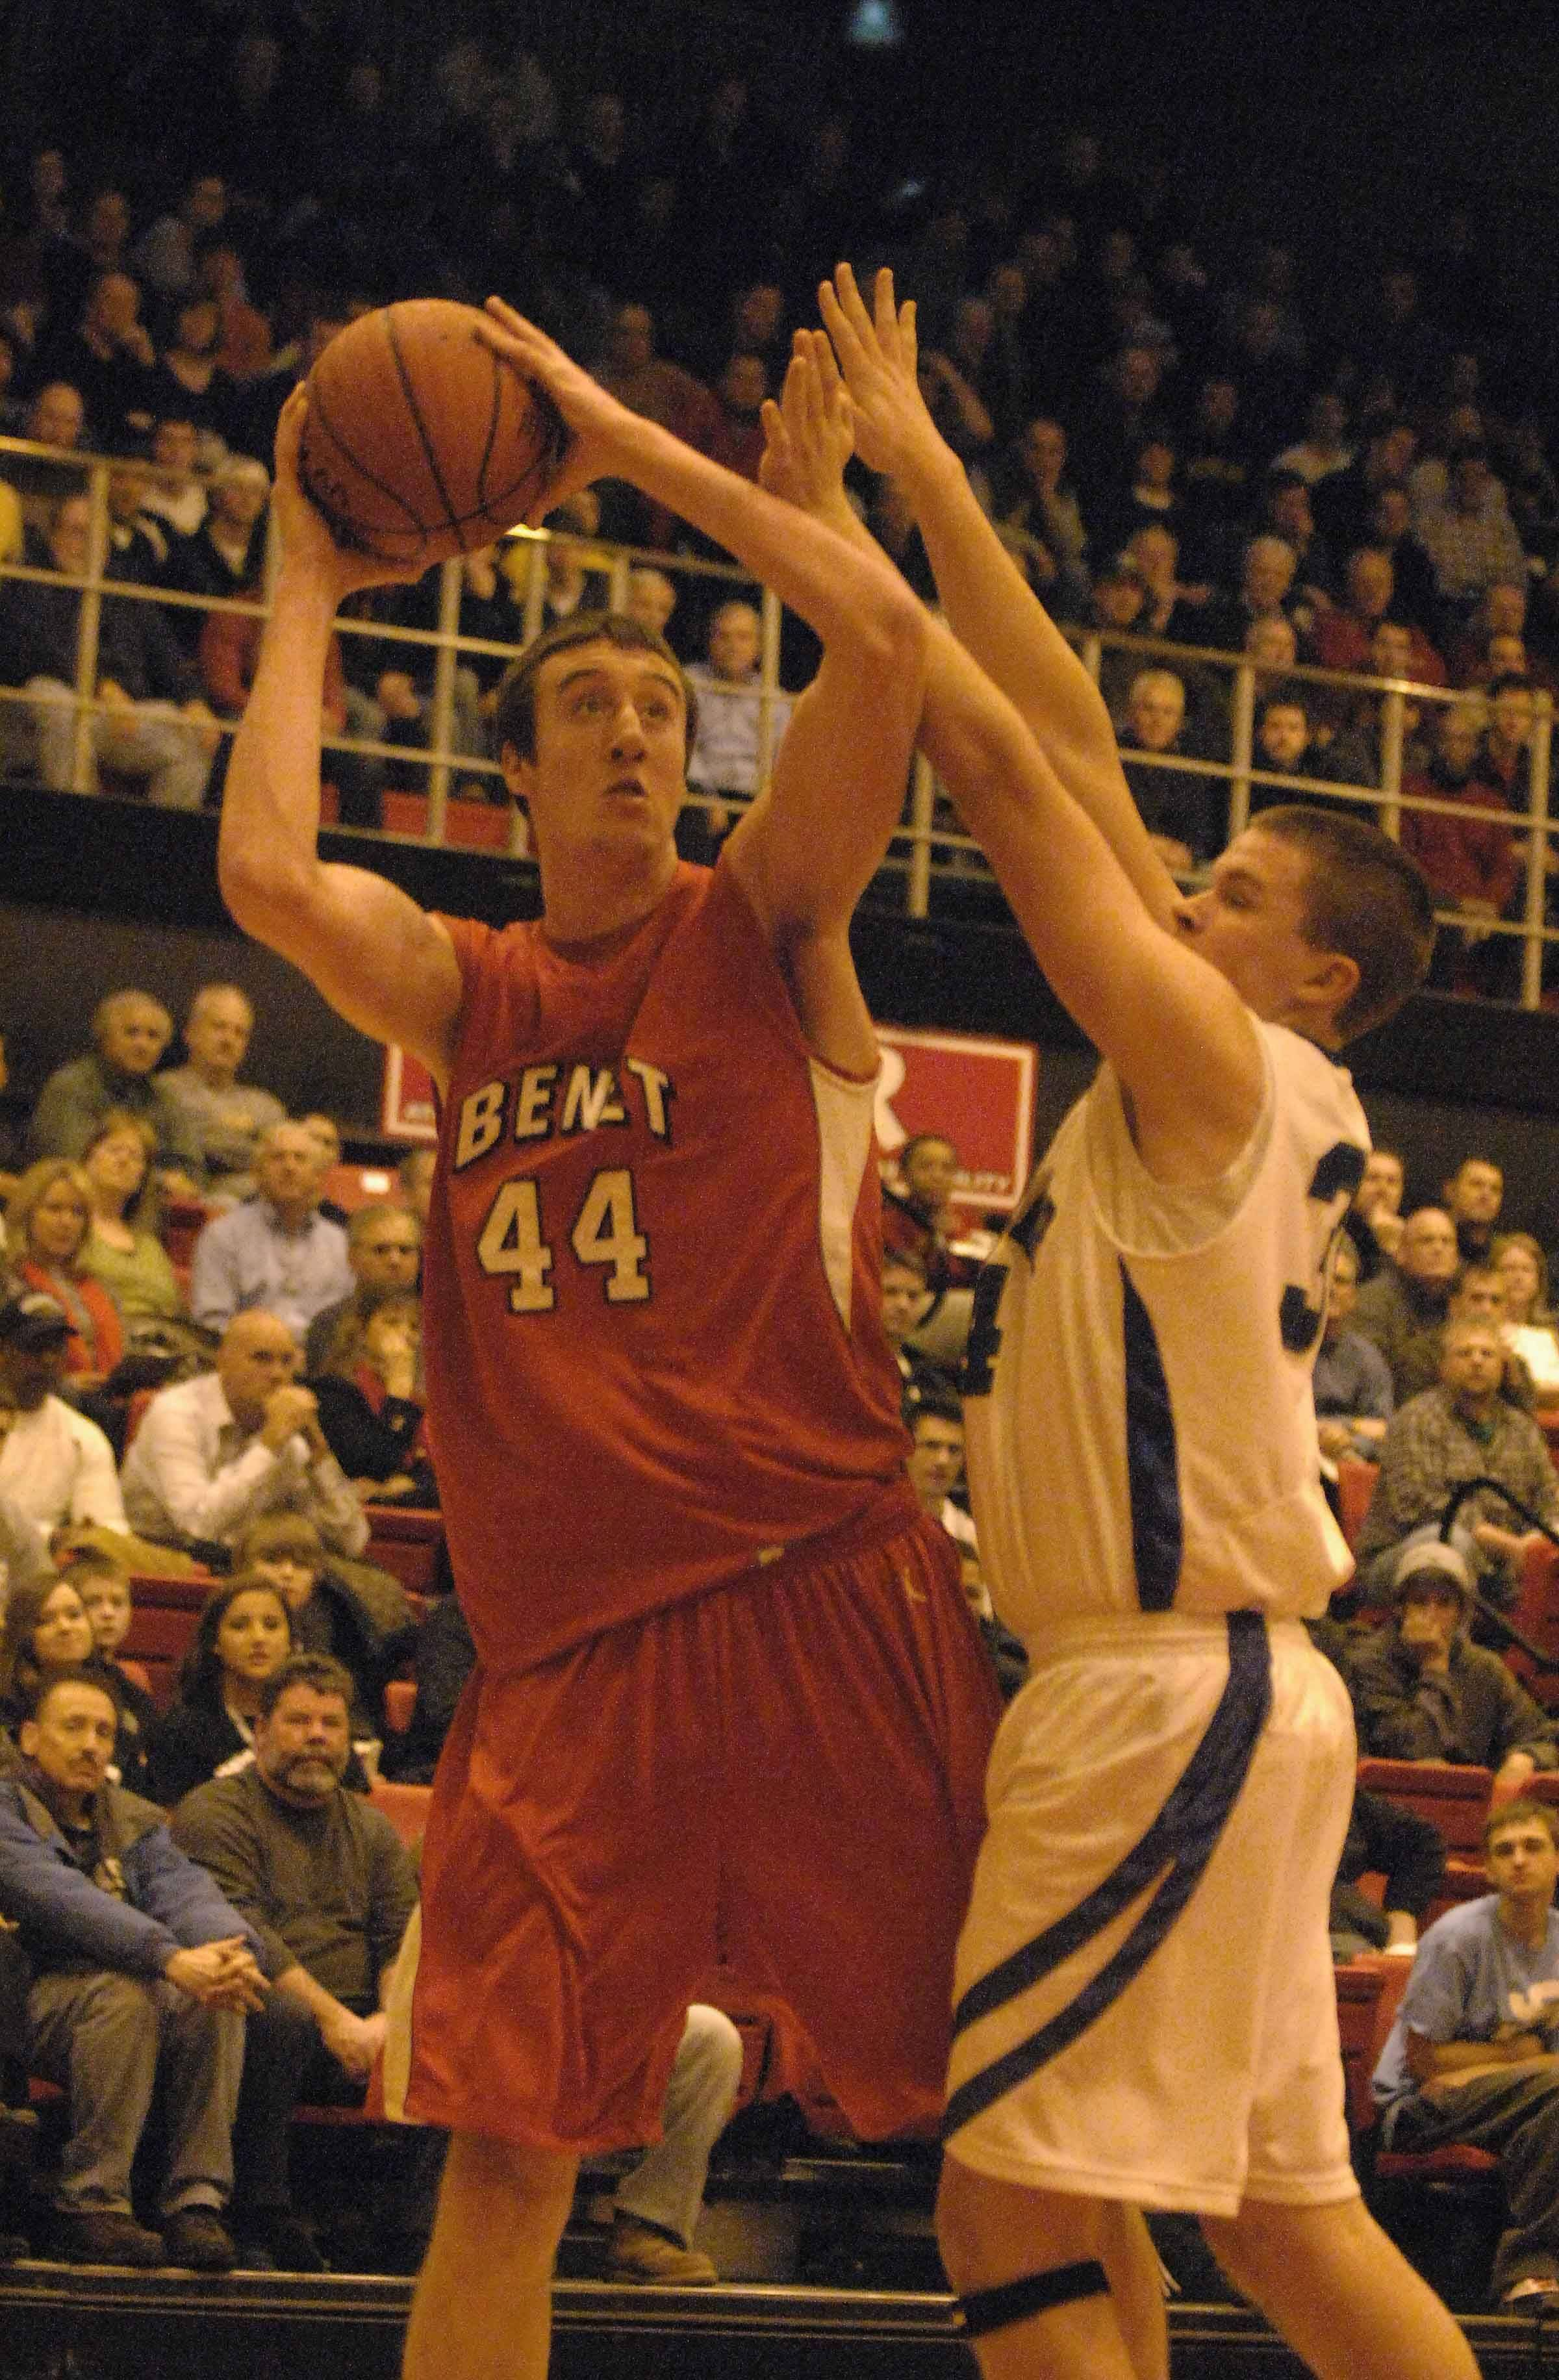 Frank Kaminsky of Benet looks to take a short during the Benet vs. New Trier boys game at Proviso West Tuesday.